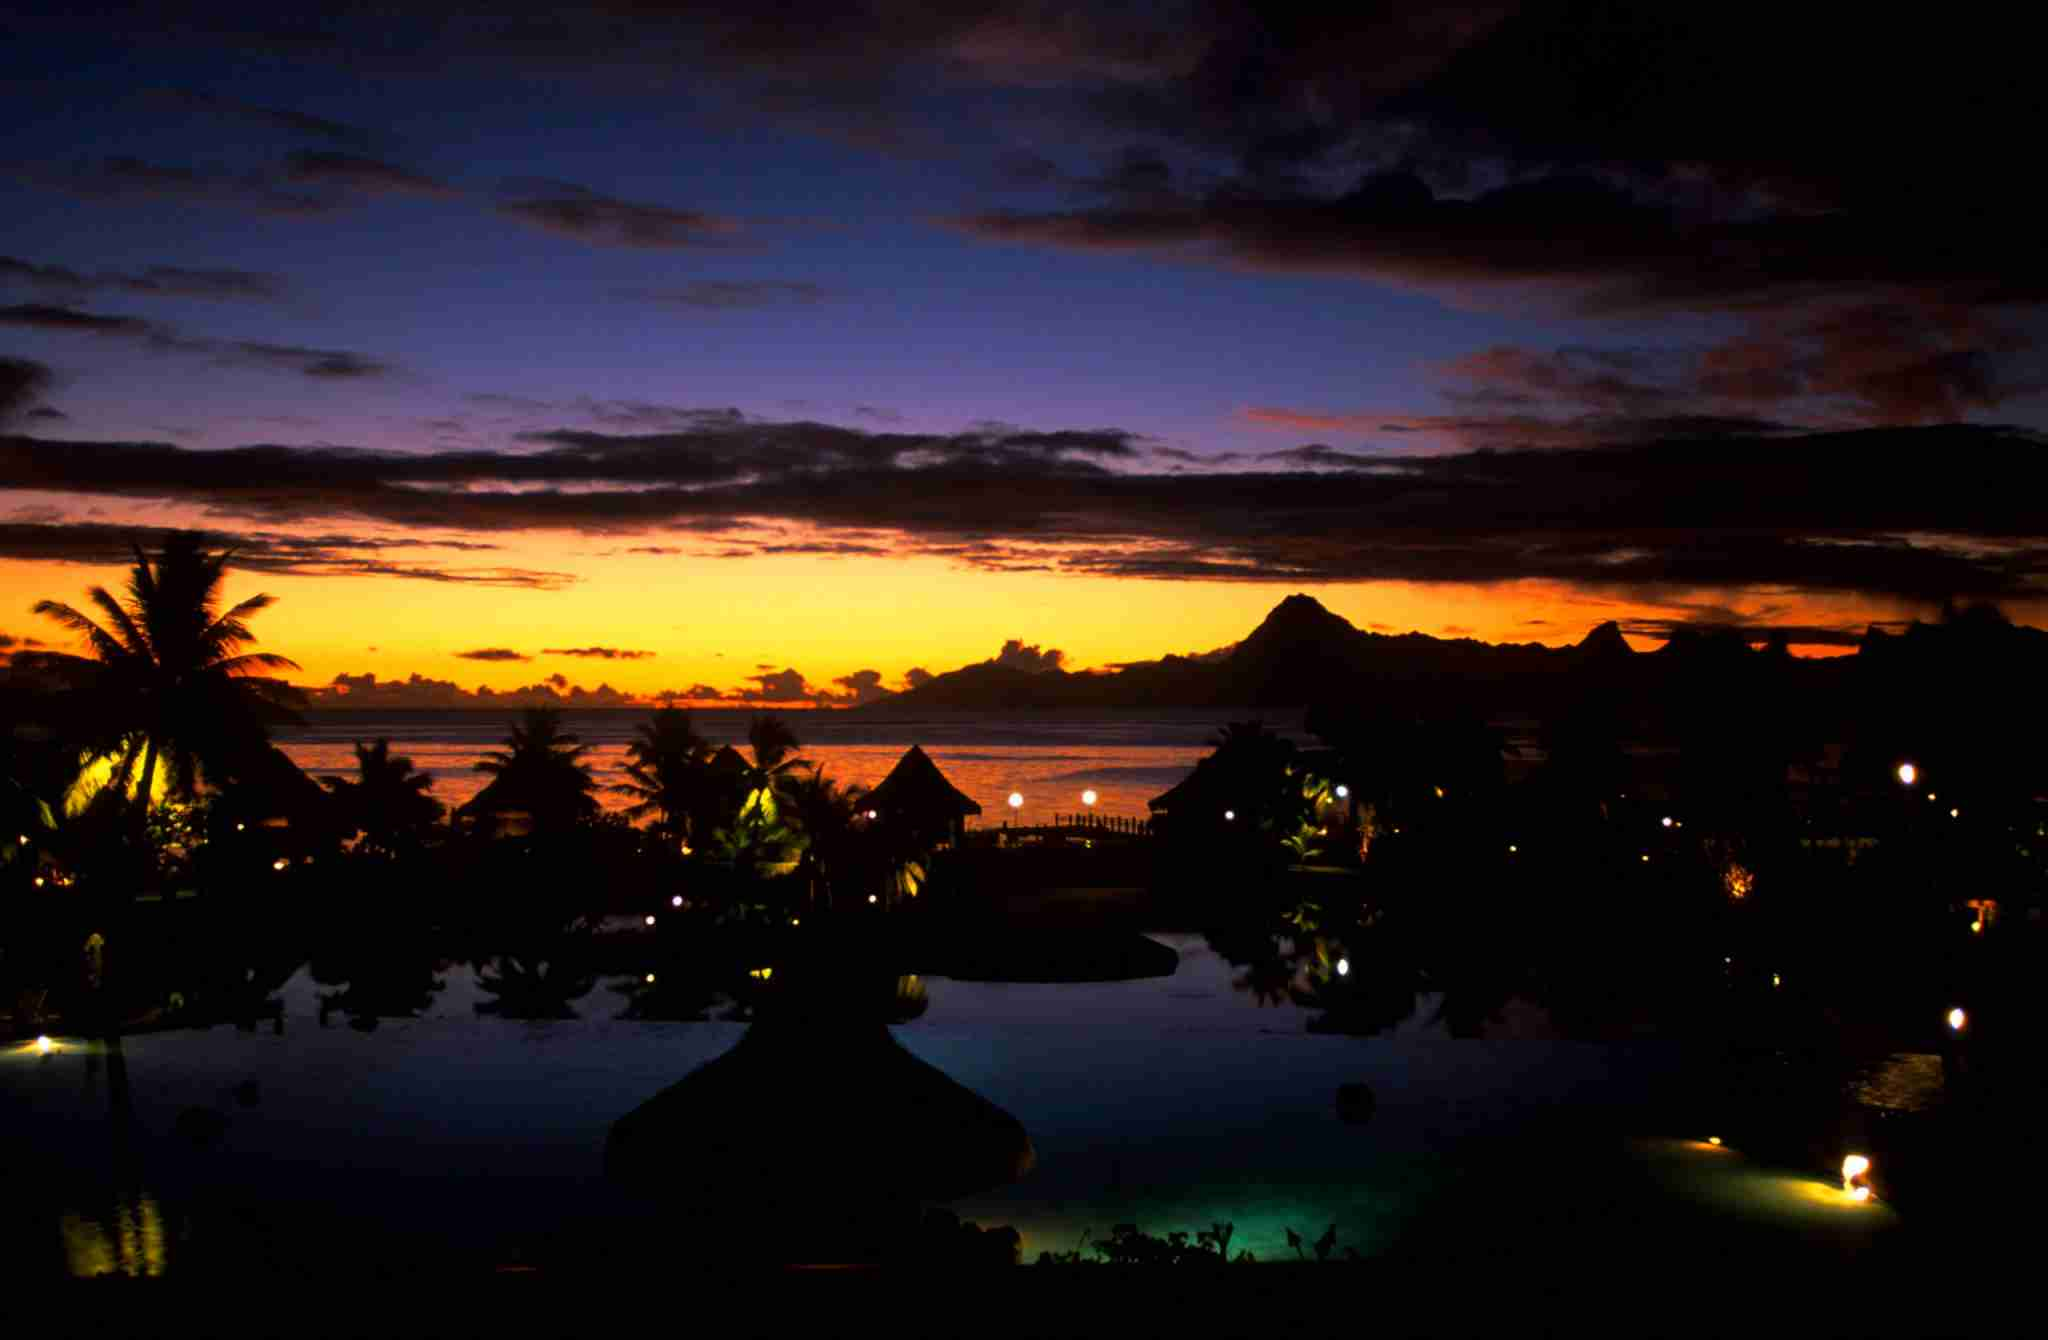 FRENCH POLYNESIA - 2002/01/01: French Polynesia, Society Islands, Tahiti, Beachcomber Hotel, After Sunset, Pool, Morea In Background. (Photo by Wolfgang Kaehler/LightRocket via Getty Images)